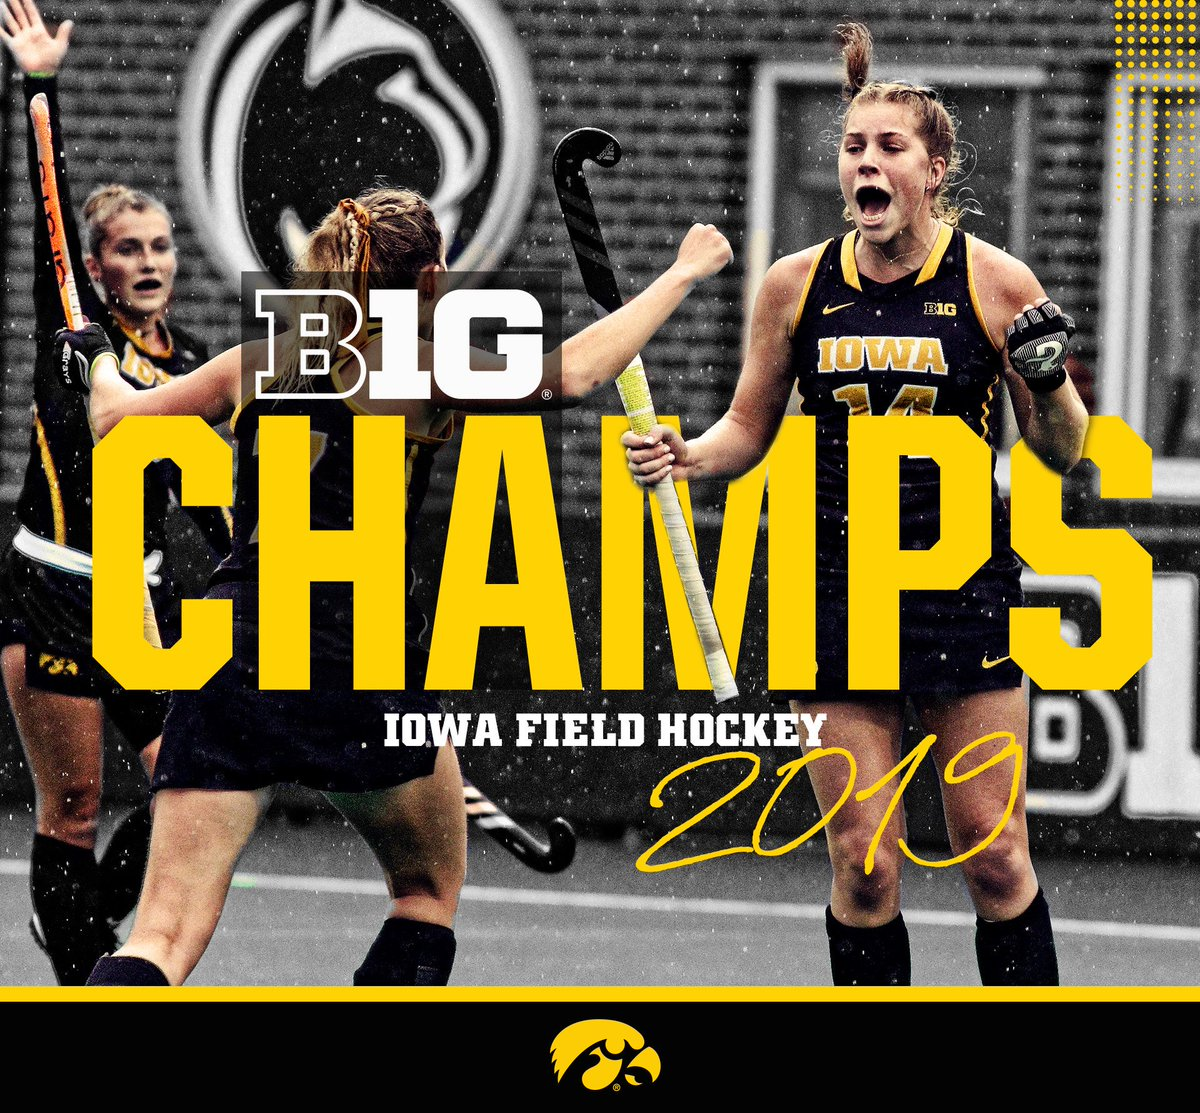 B1G CHAMPS!! LETS GO!! Iowa wastes no time in overtime and beats Penn State, 1-0! #Hawkeyes | #FightForIowa